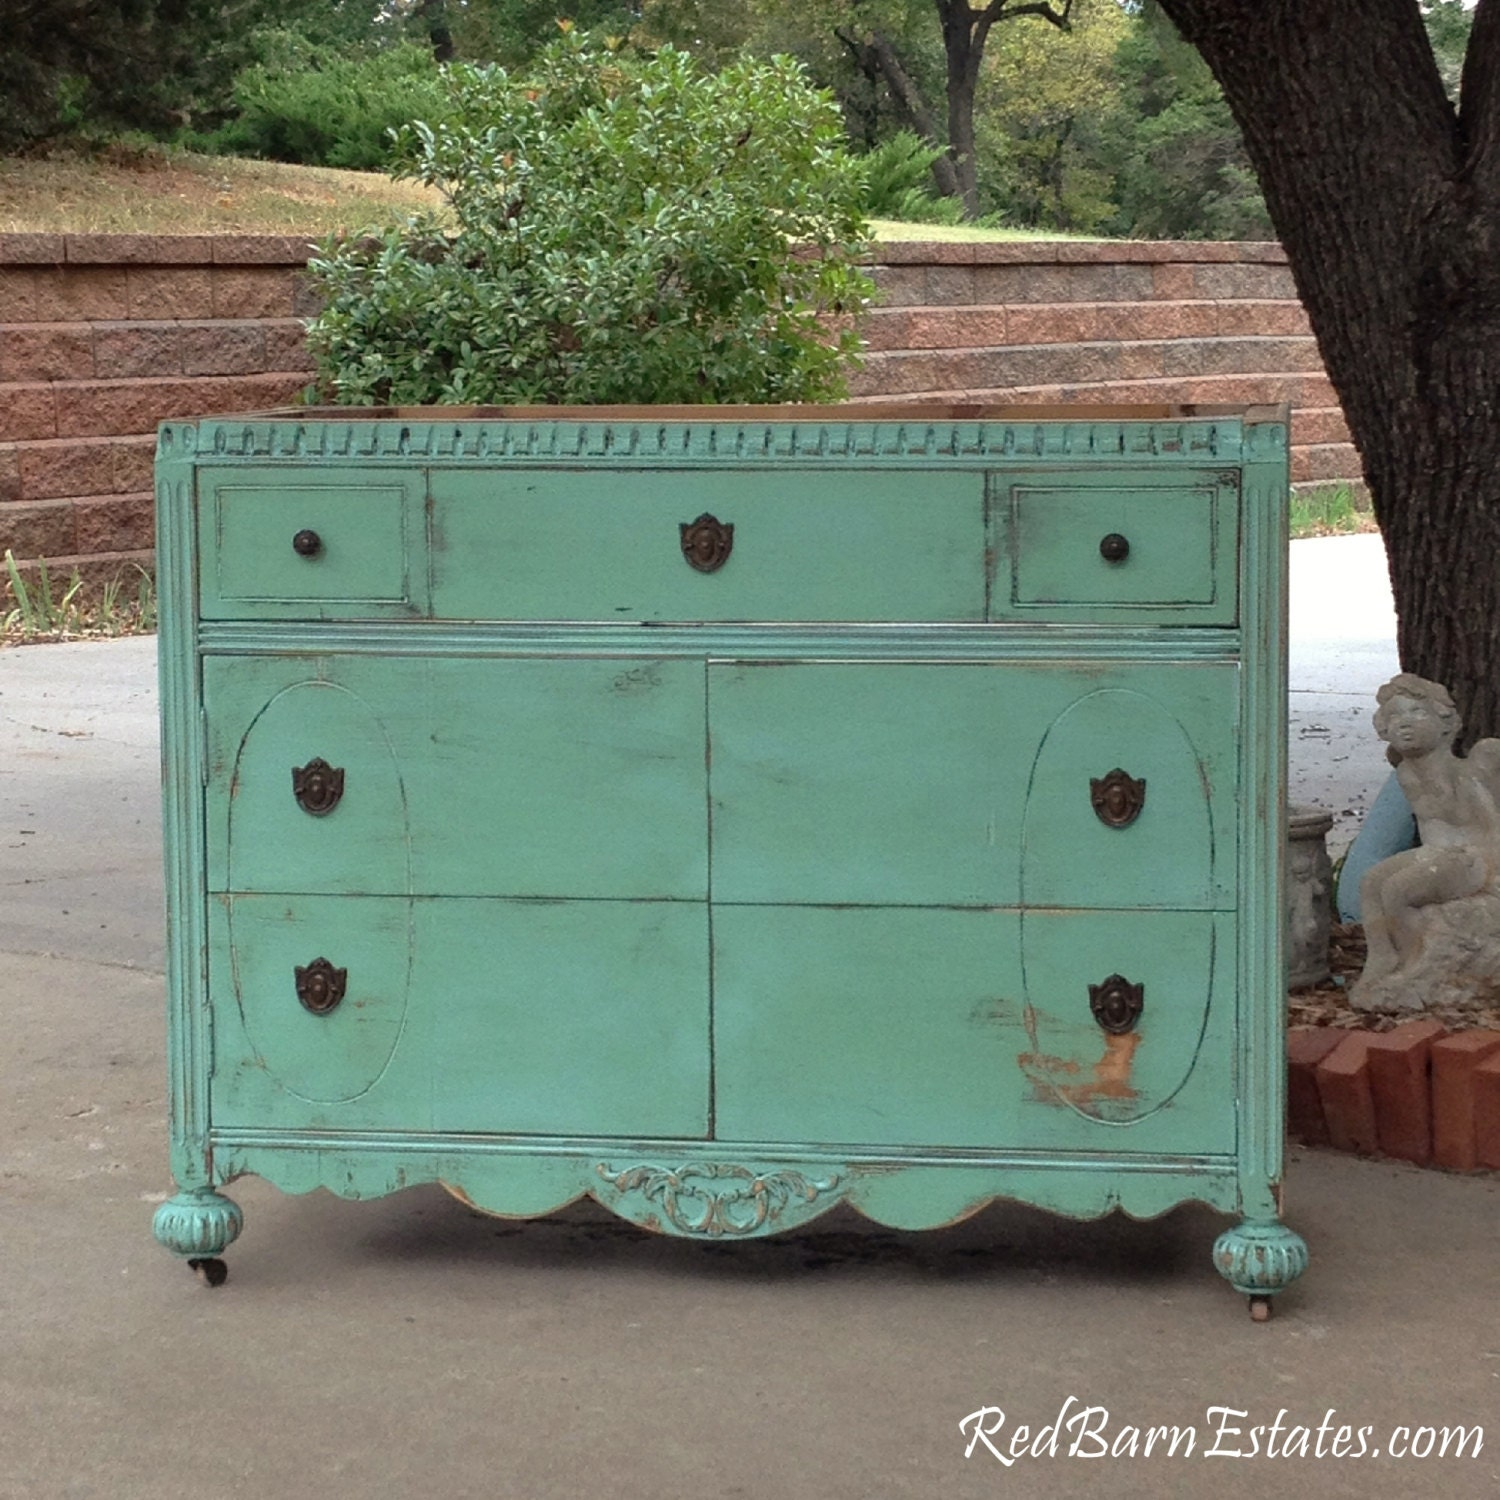 Bathroom Vanity Shabby Chic Bathroom Furniture Vanity Cabinet Converted From Antique Dresser Painted In Your Color 37 To 48